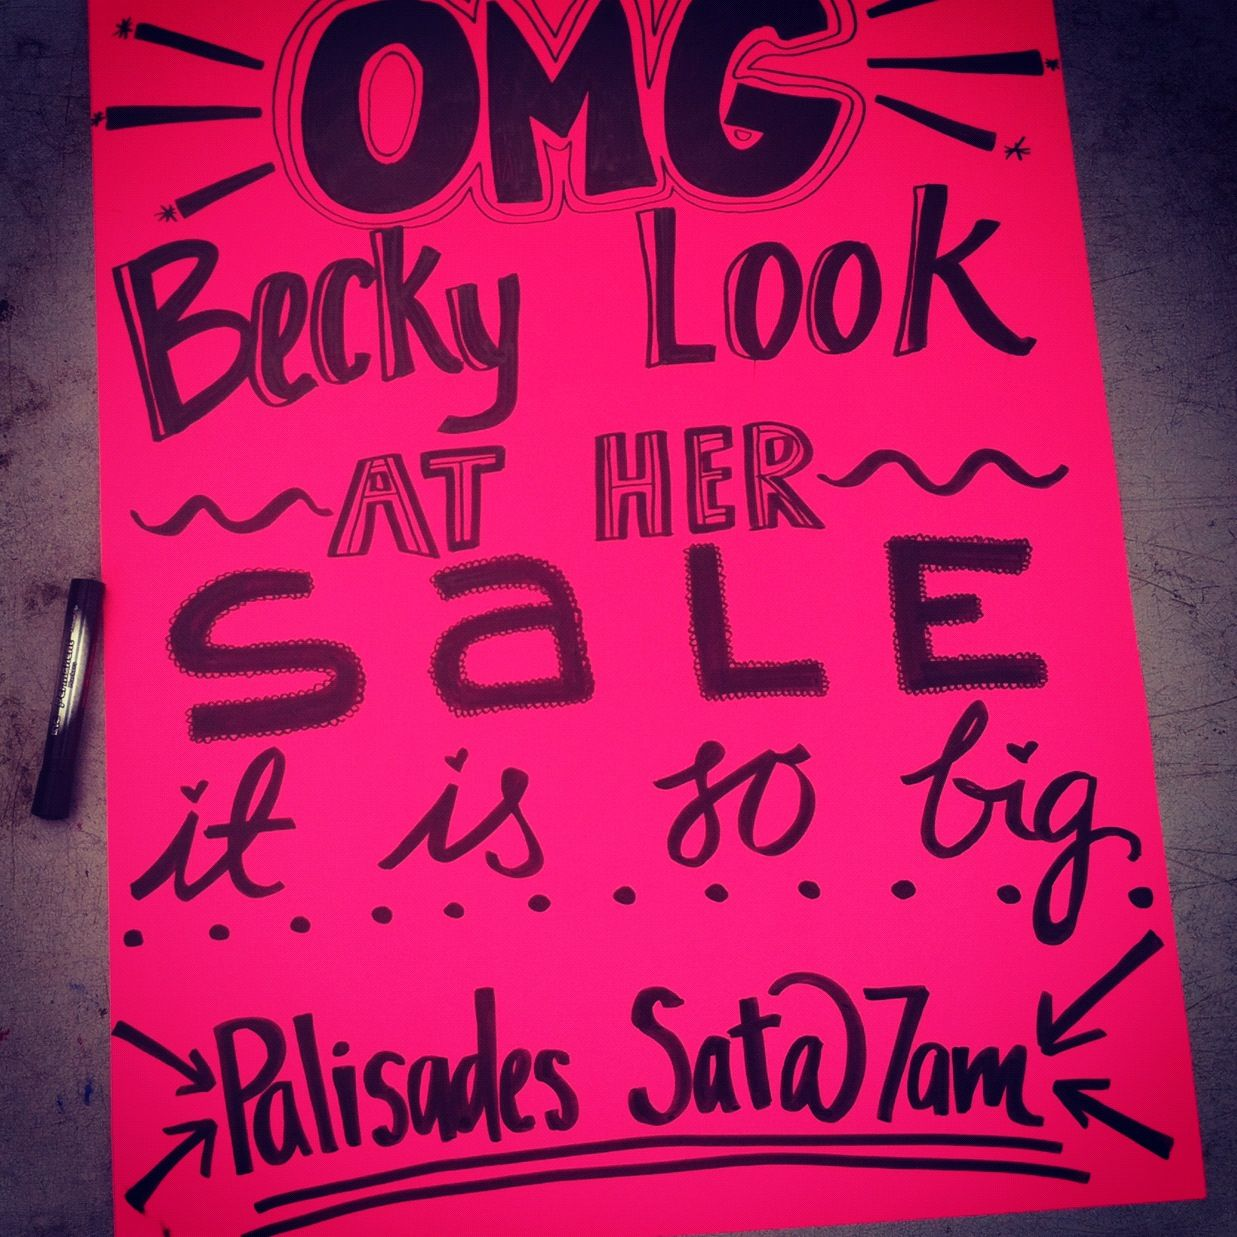 Resale Ideas Make Money   The Best Garage Sale Sign I Made For Tomorrow!  Heehee This Is Your Chance To Grab 100 Great Products WITH Master Resale  Rights For ...